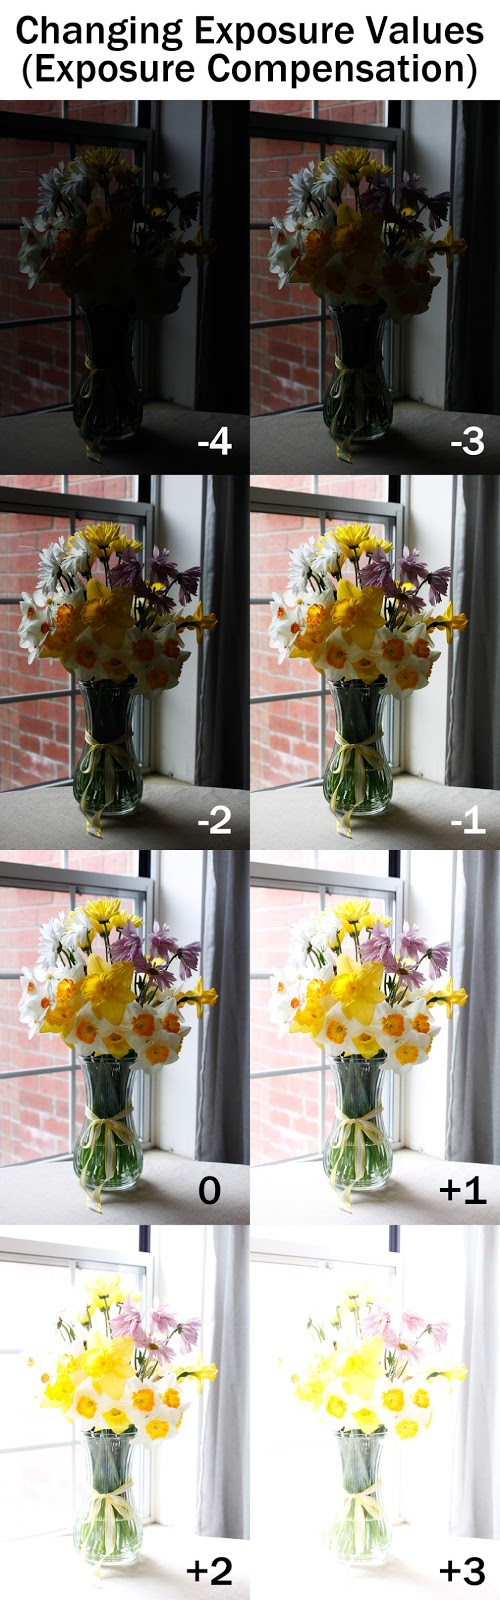 Changing Exposure Values using Exposure Compensation   Boost Your Photography